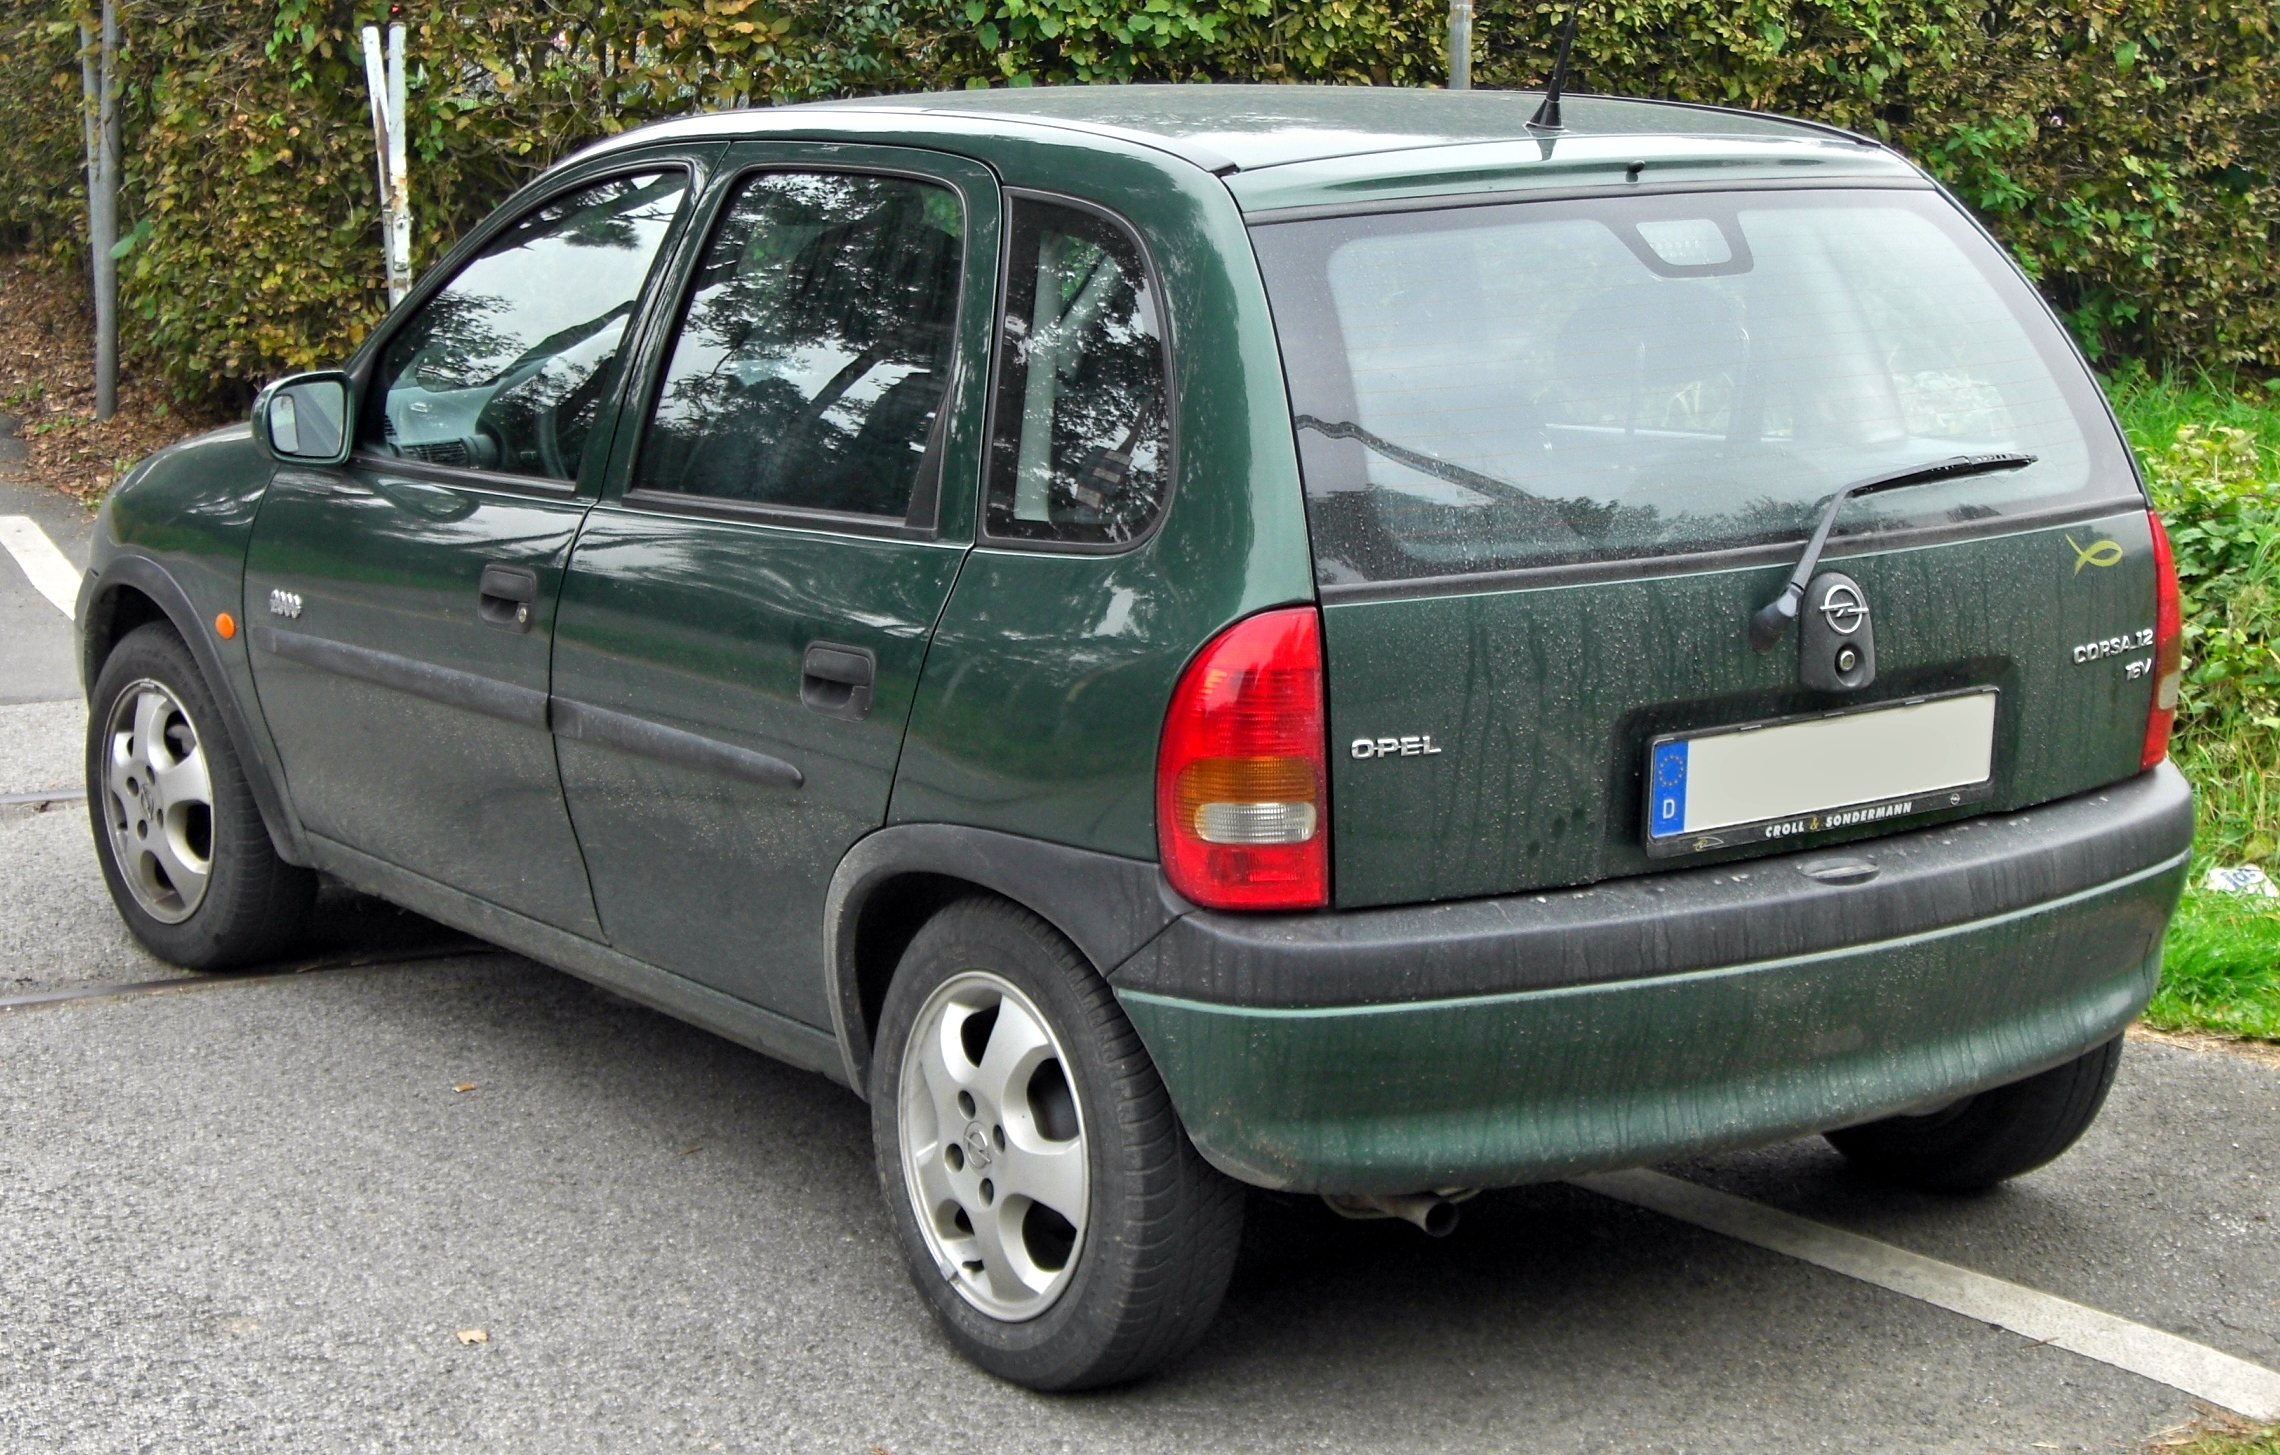 file:opel corsa b 1 2 16v edition 2000 5-t�rer facelift rear jpg